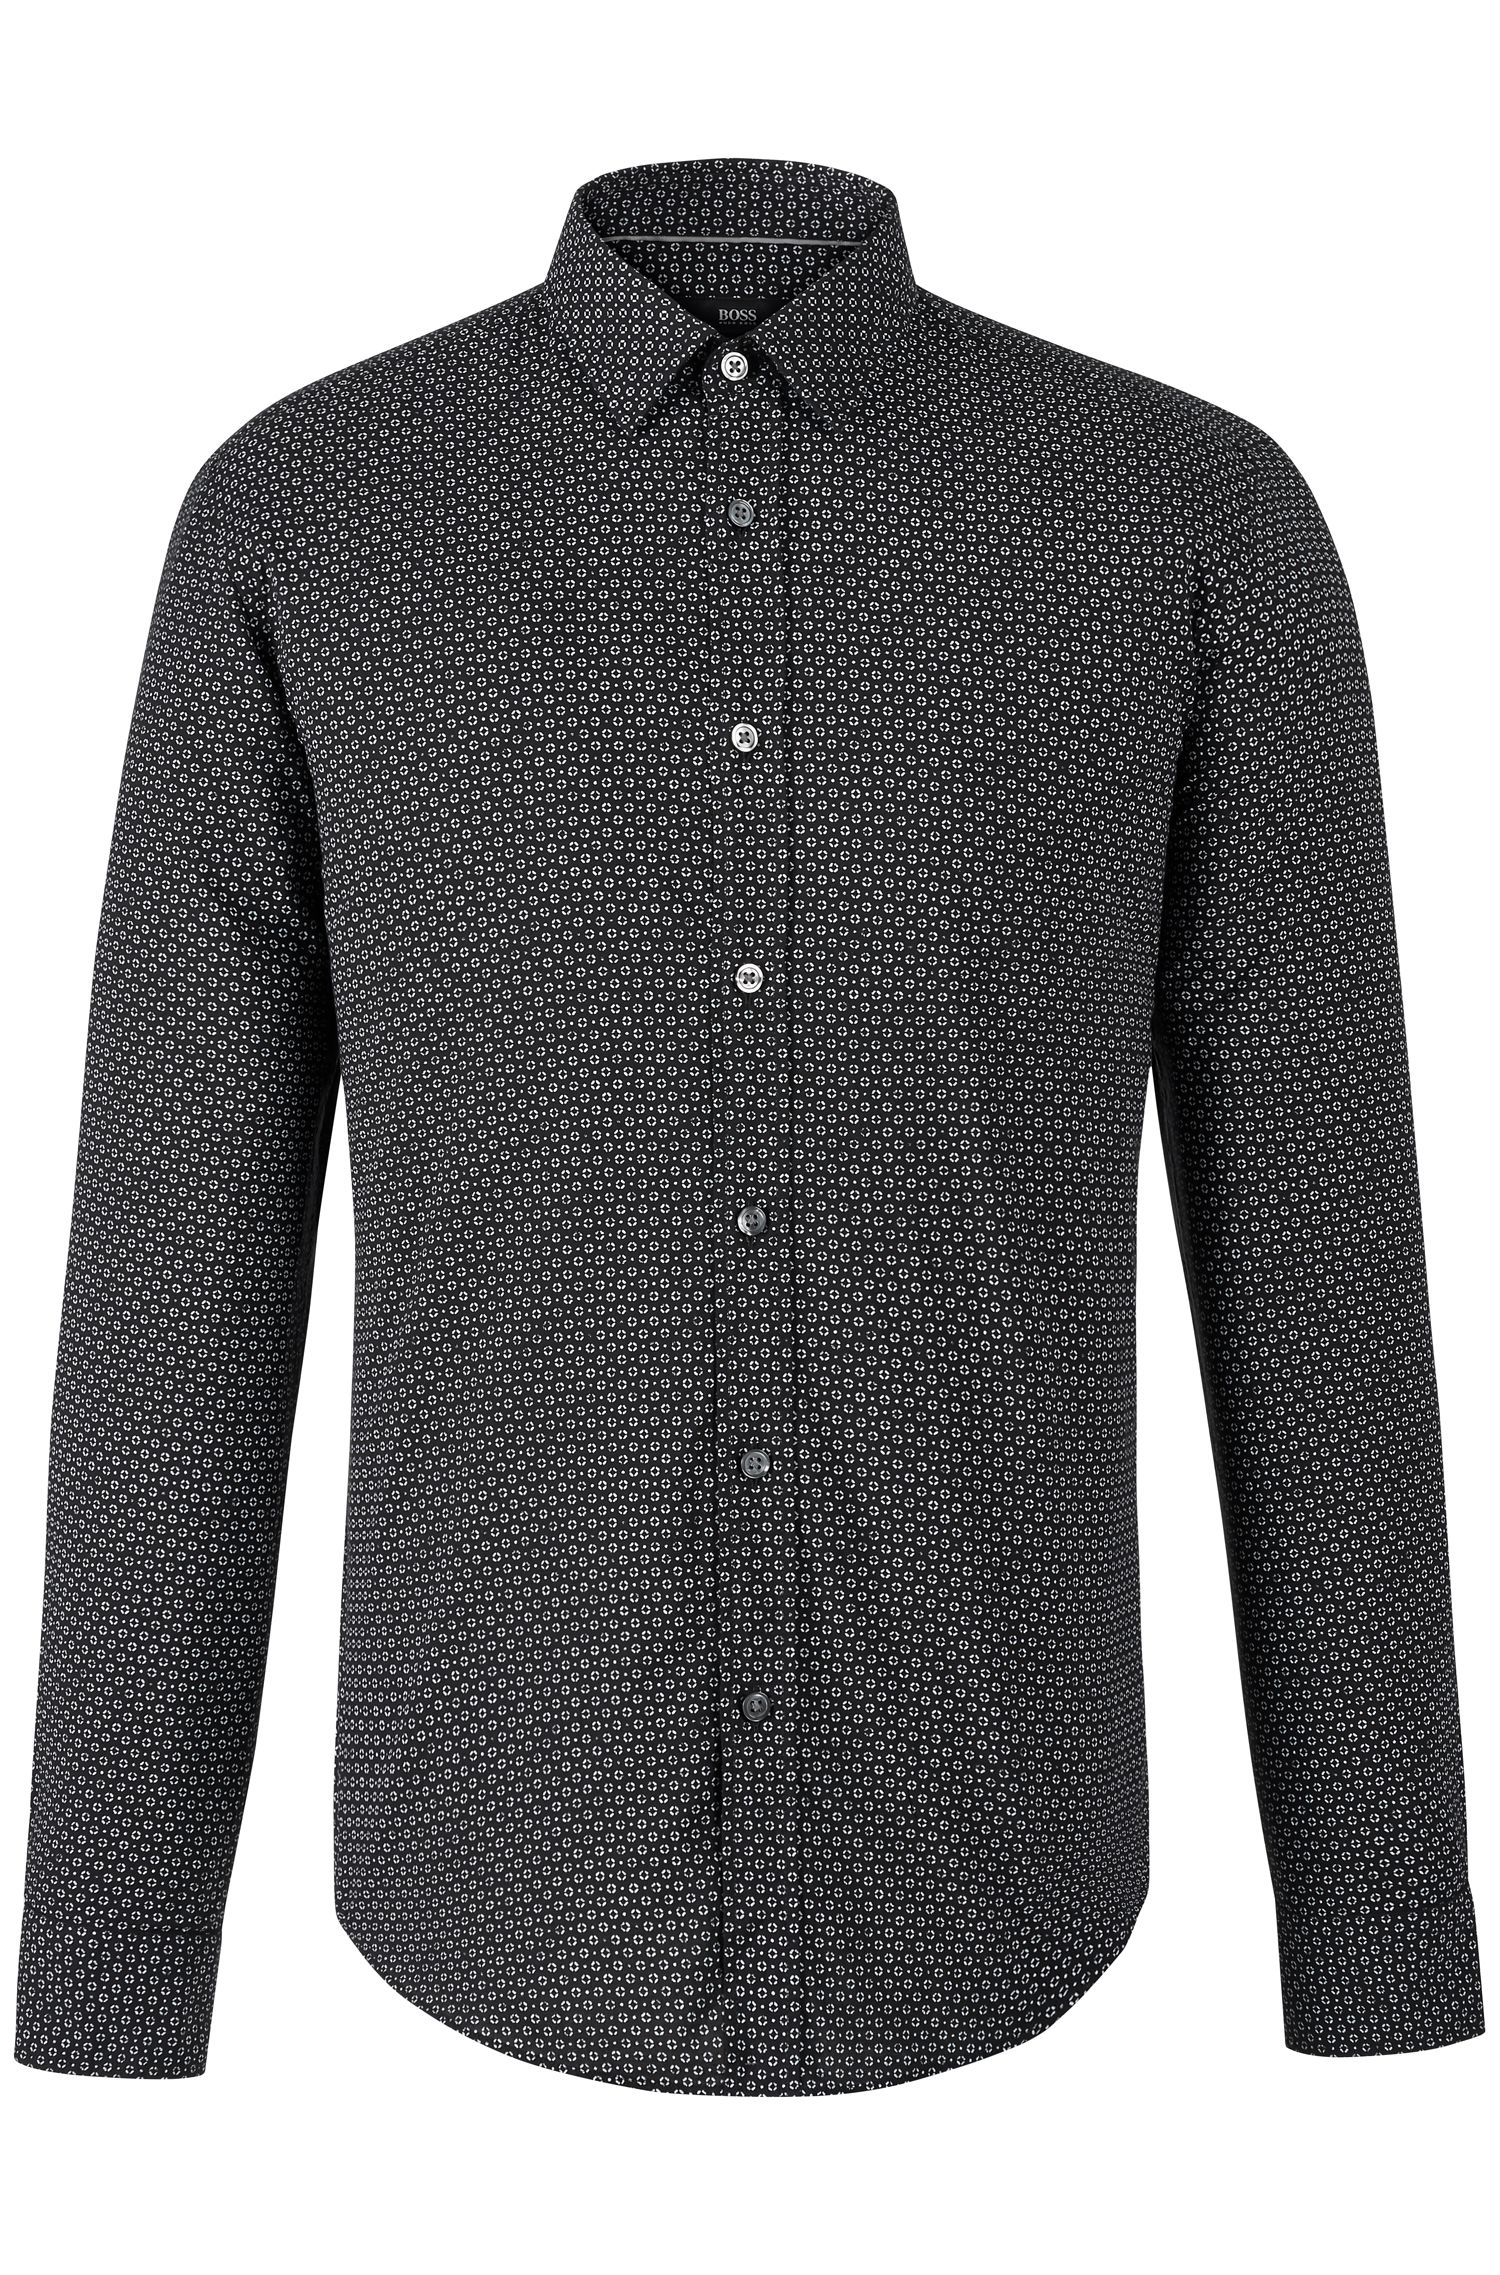 'Ronni' | Slim Fit, Cotton Patterned Button Down Shirt